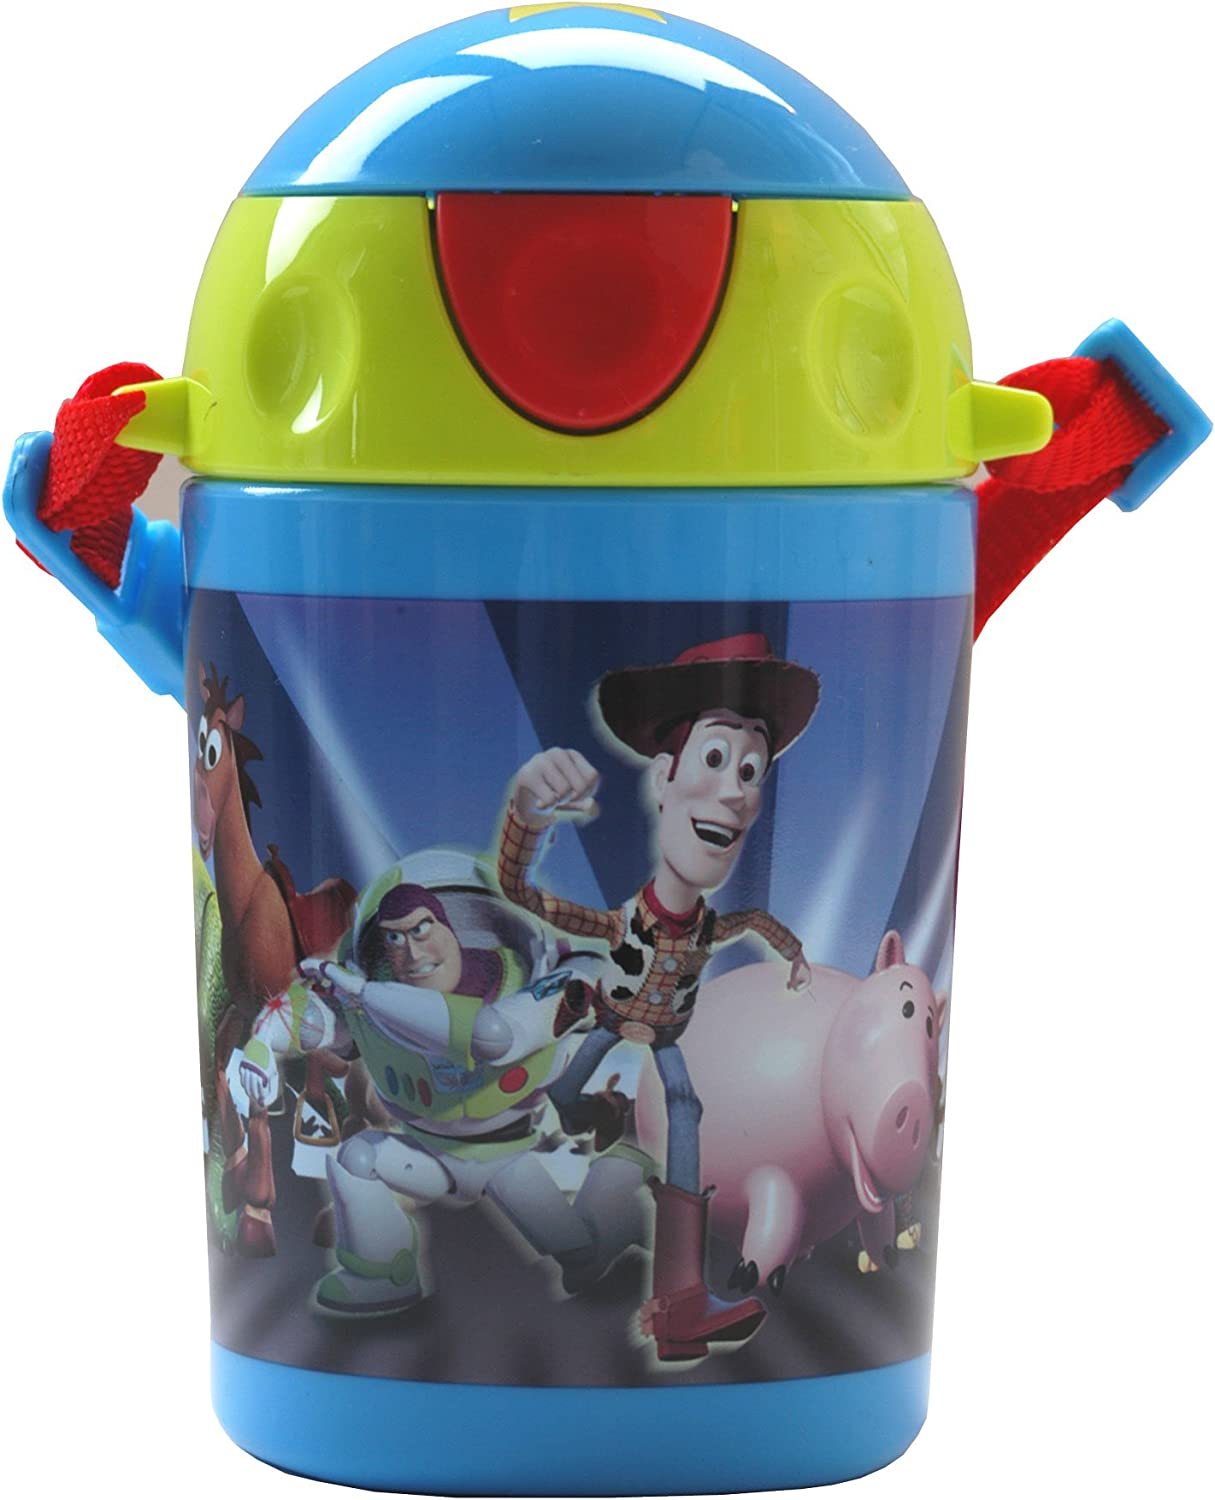 Toy Story 3 17778 - Cantimplora deportiva botella de 15 cm (Joy Toy) , color/modelo surtido